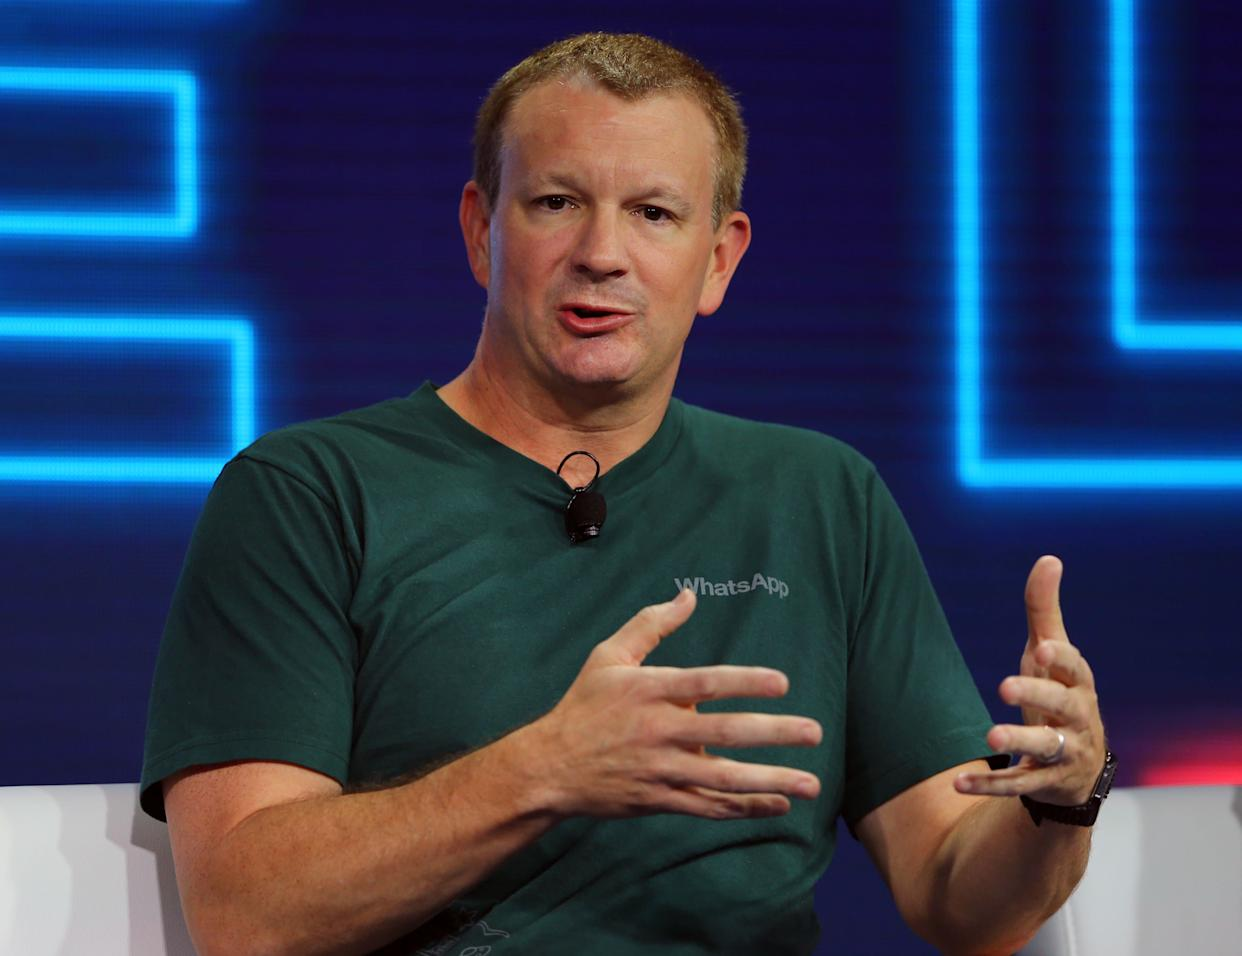 Brian Acton, co-founder of WhatsApp (Photo: Mike Blake / Reuters)